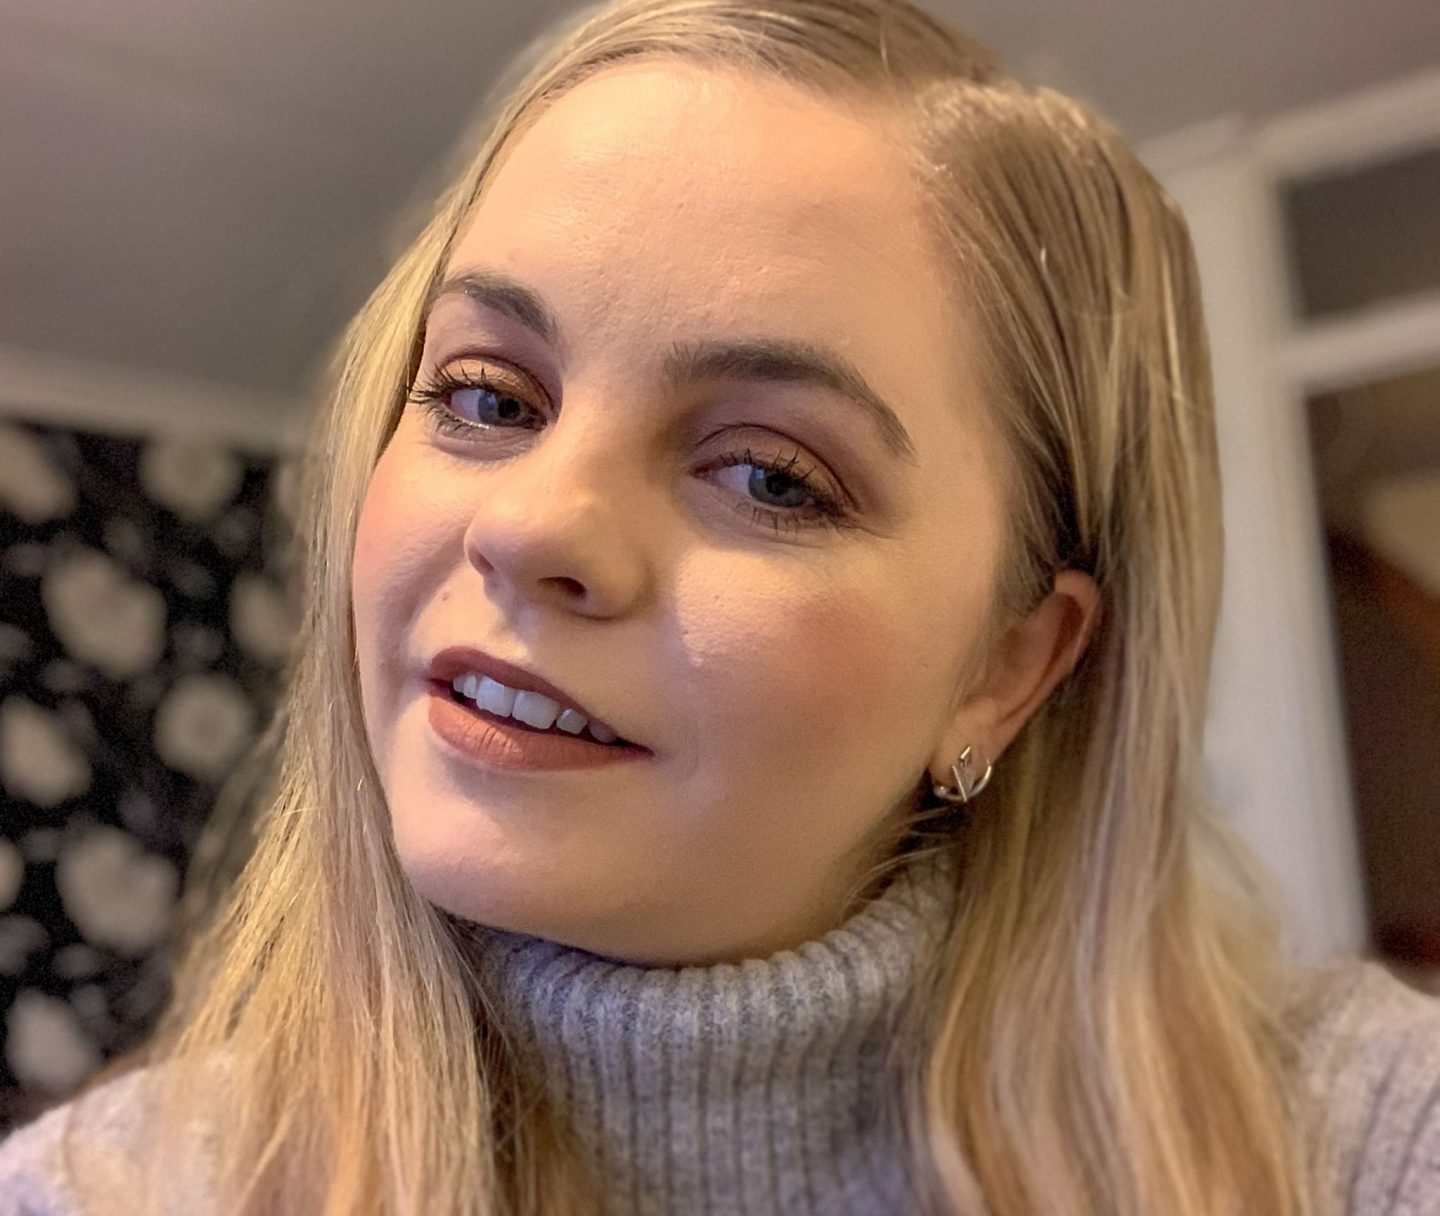 The December All Out Makeup Challenge